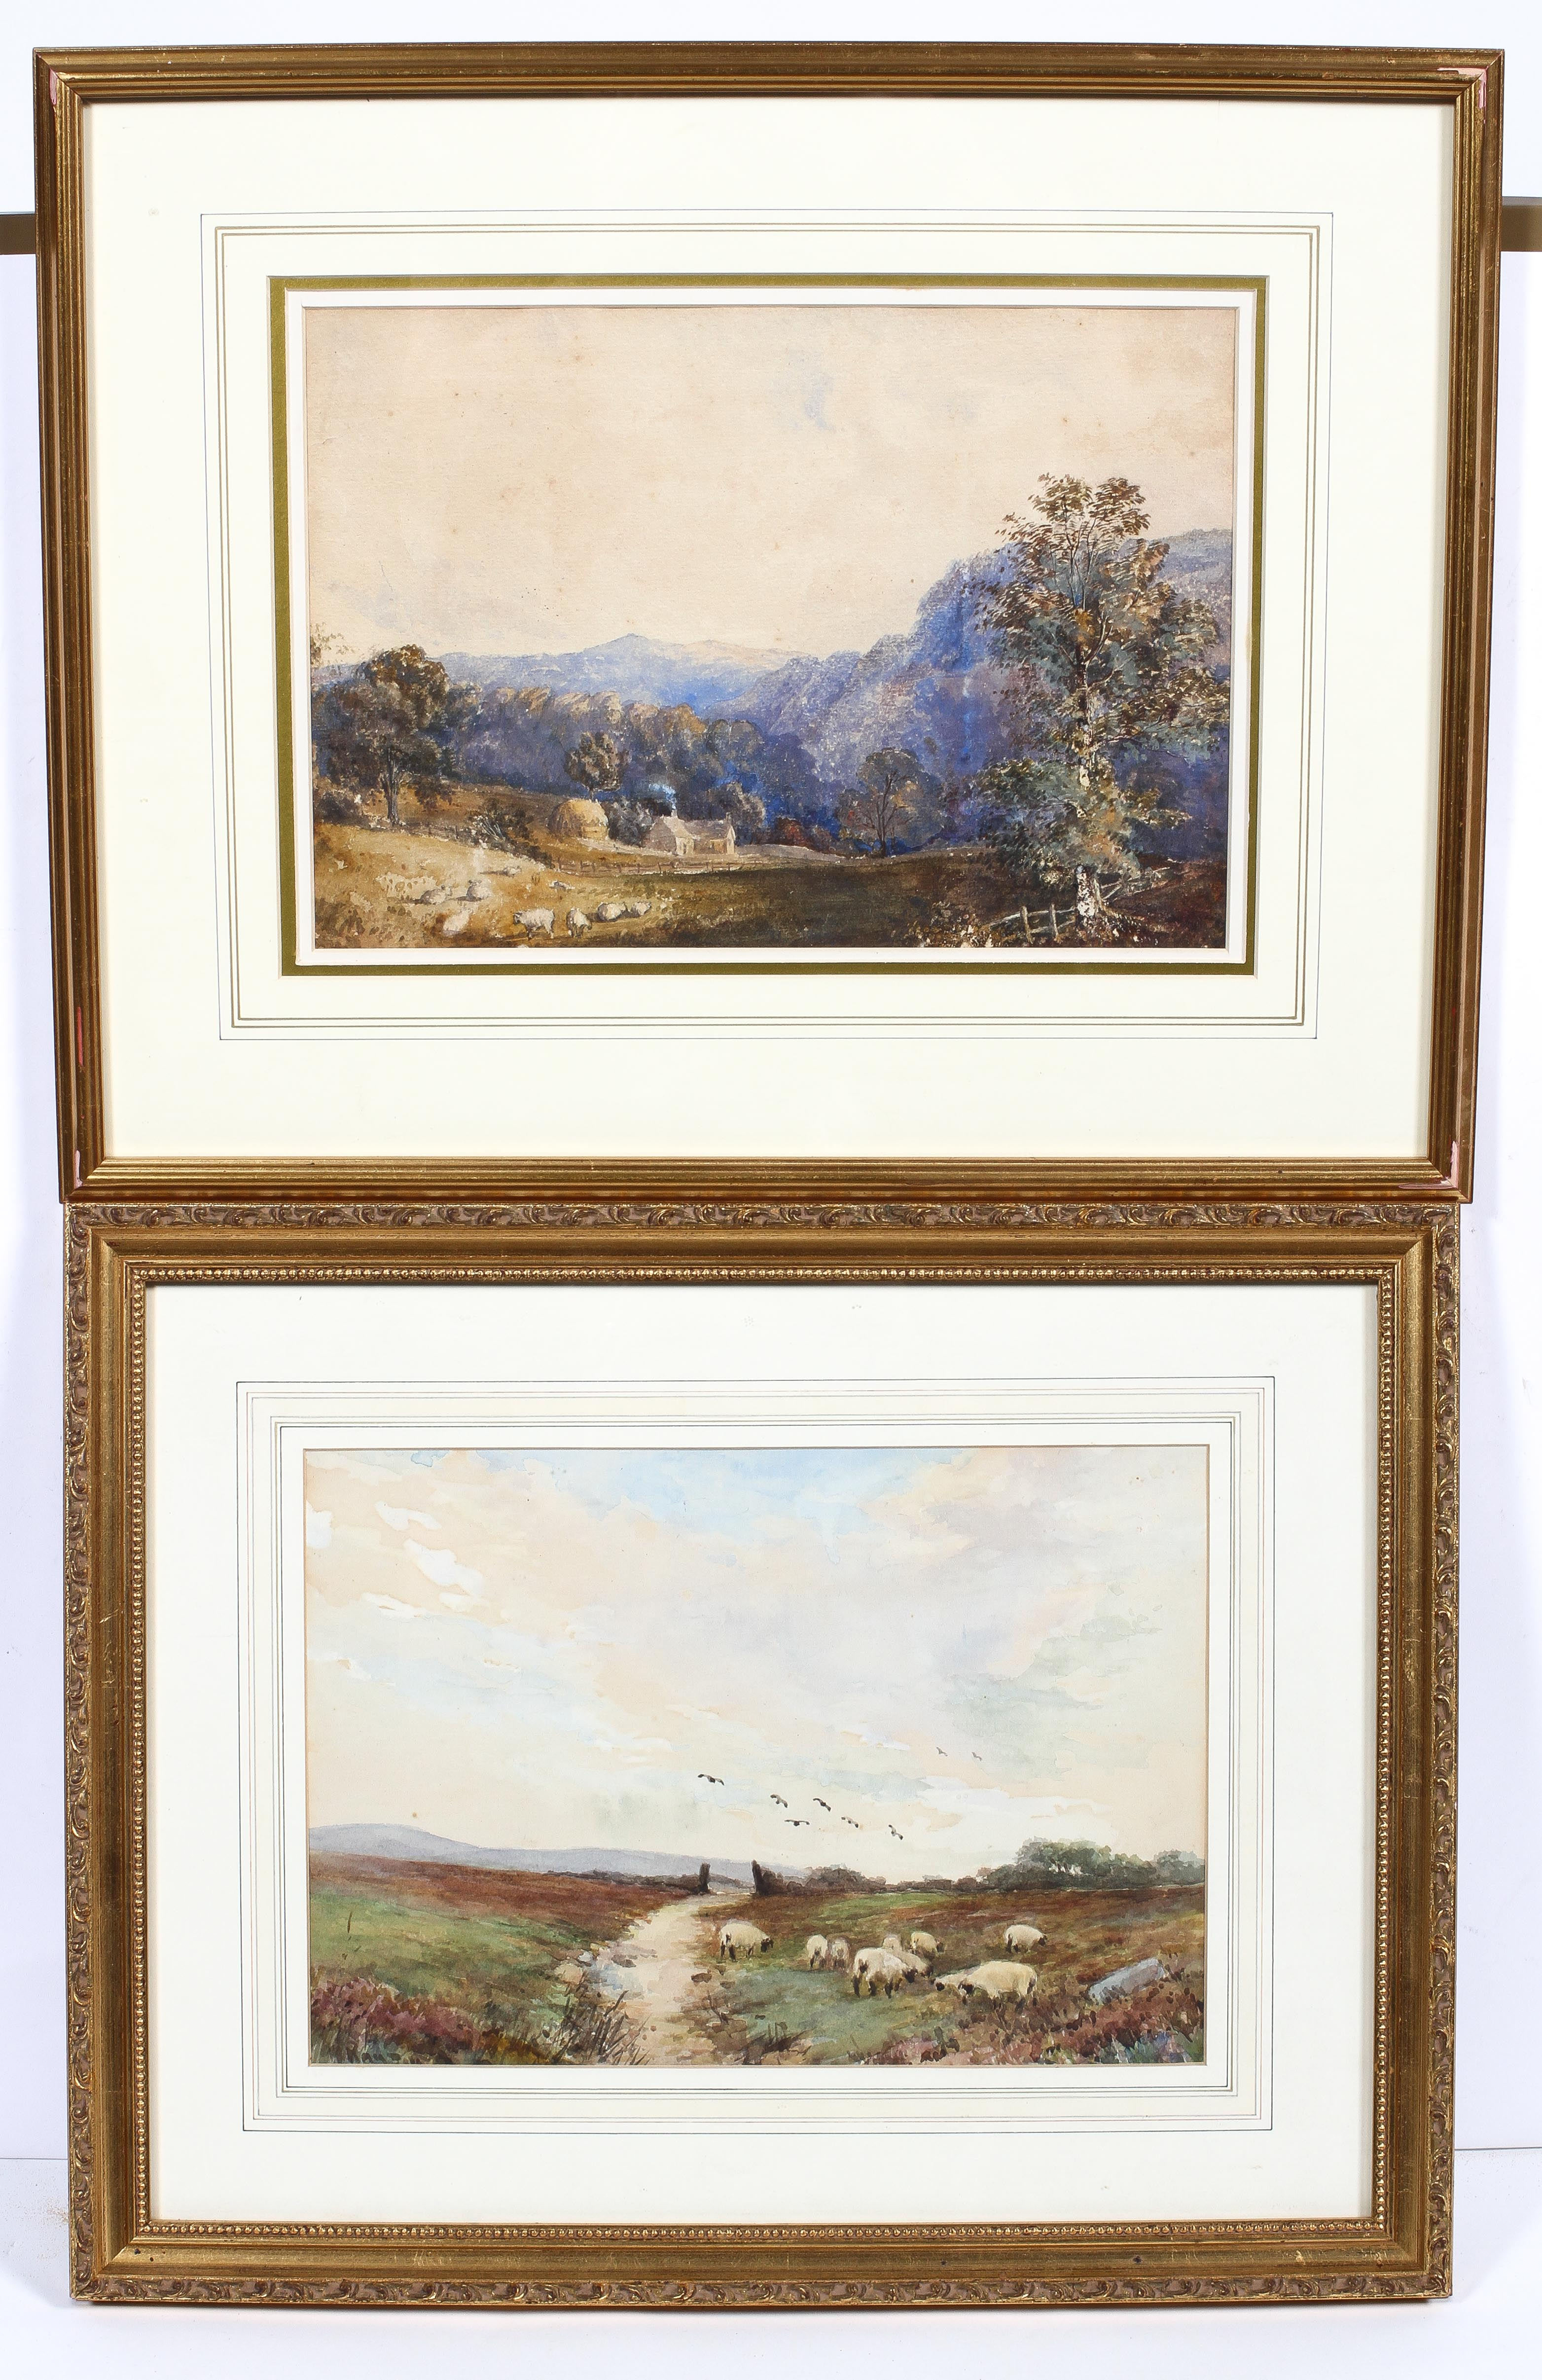 Maud, Sheep grazing, watercolour, signed lower left,